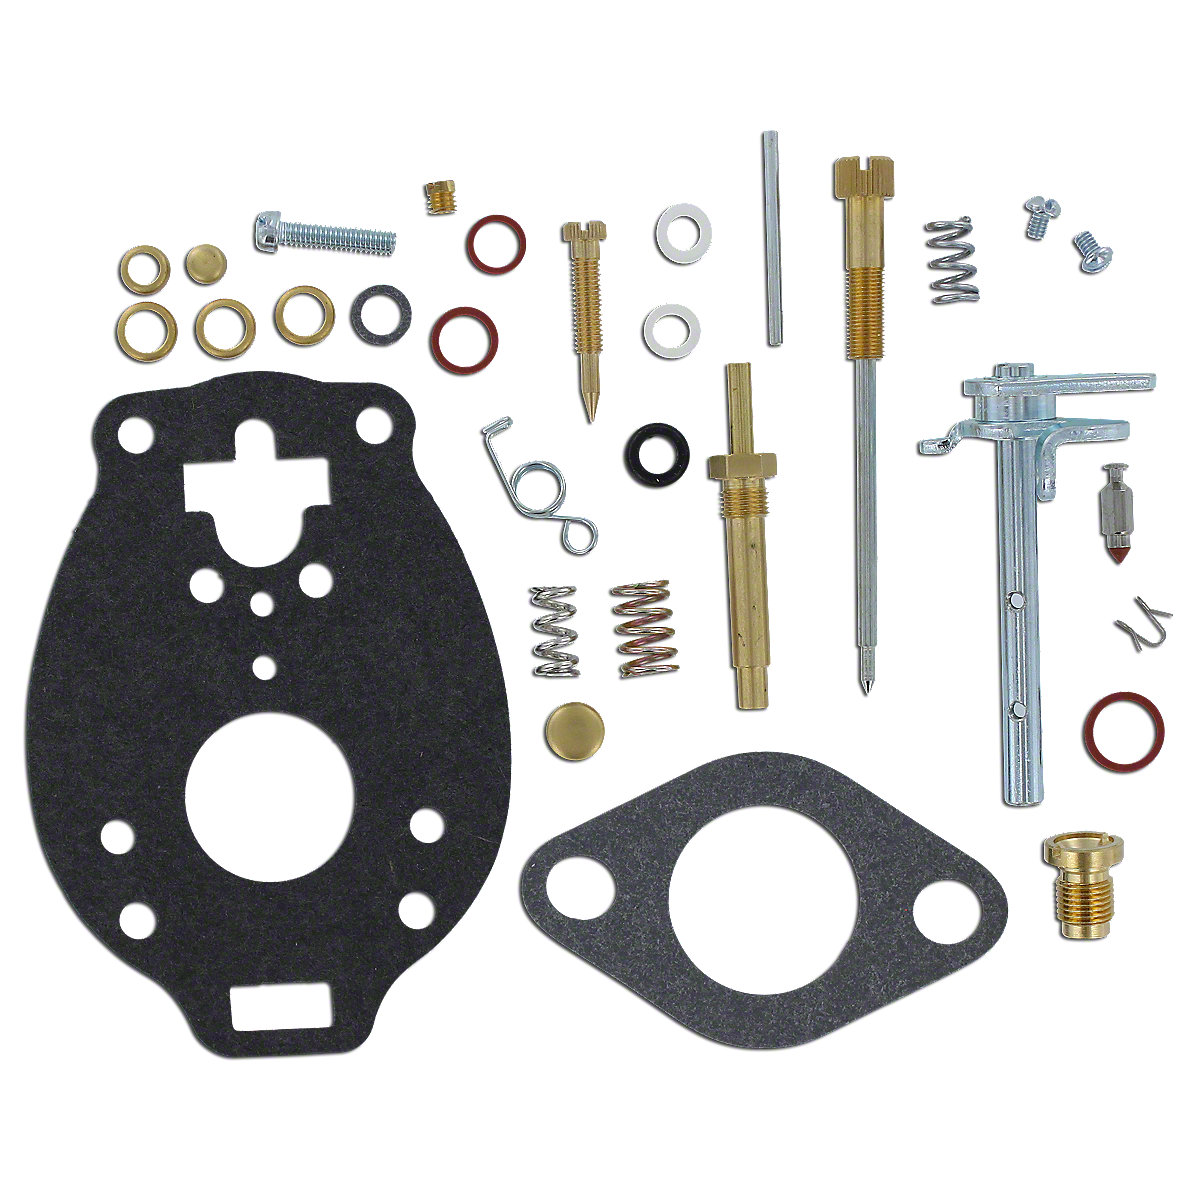 Marvel Schebler Basic Carburetor Kit For Massey Ferguson: 35, 40, 50, 135, 150, TO35, Massey Harris: 50